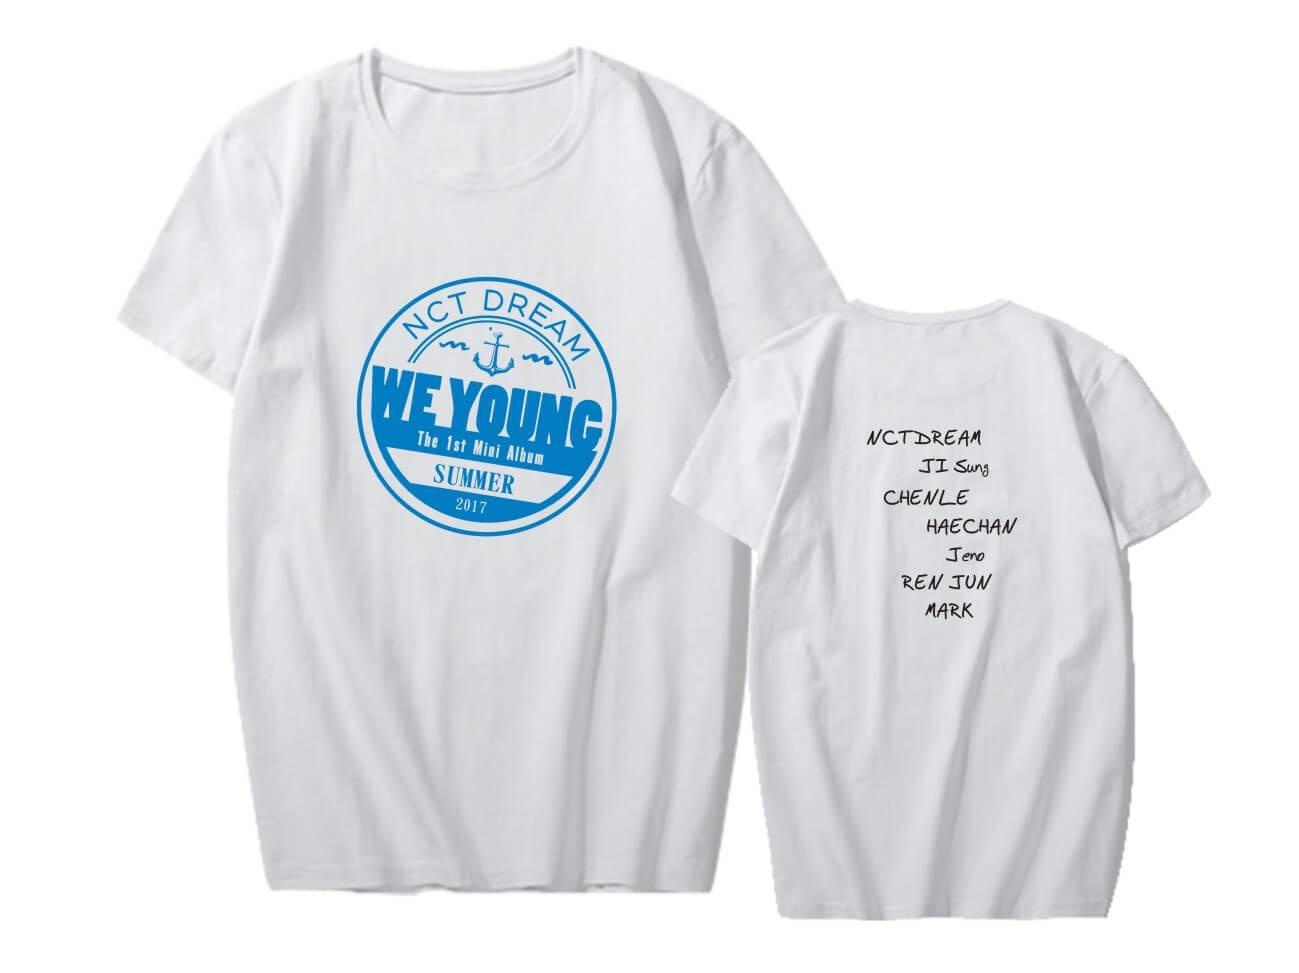 NCT DREAM We Young Album Printed T-shirt